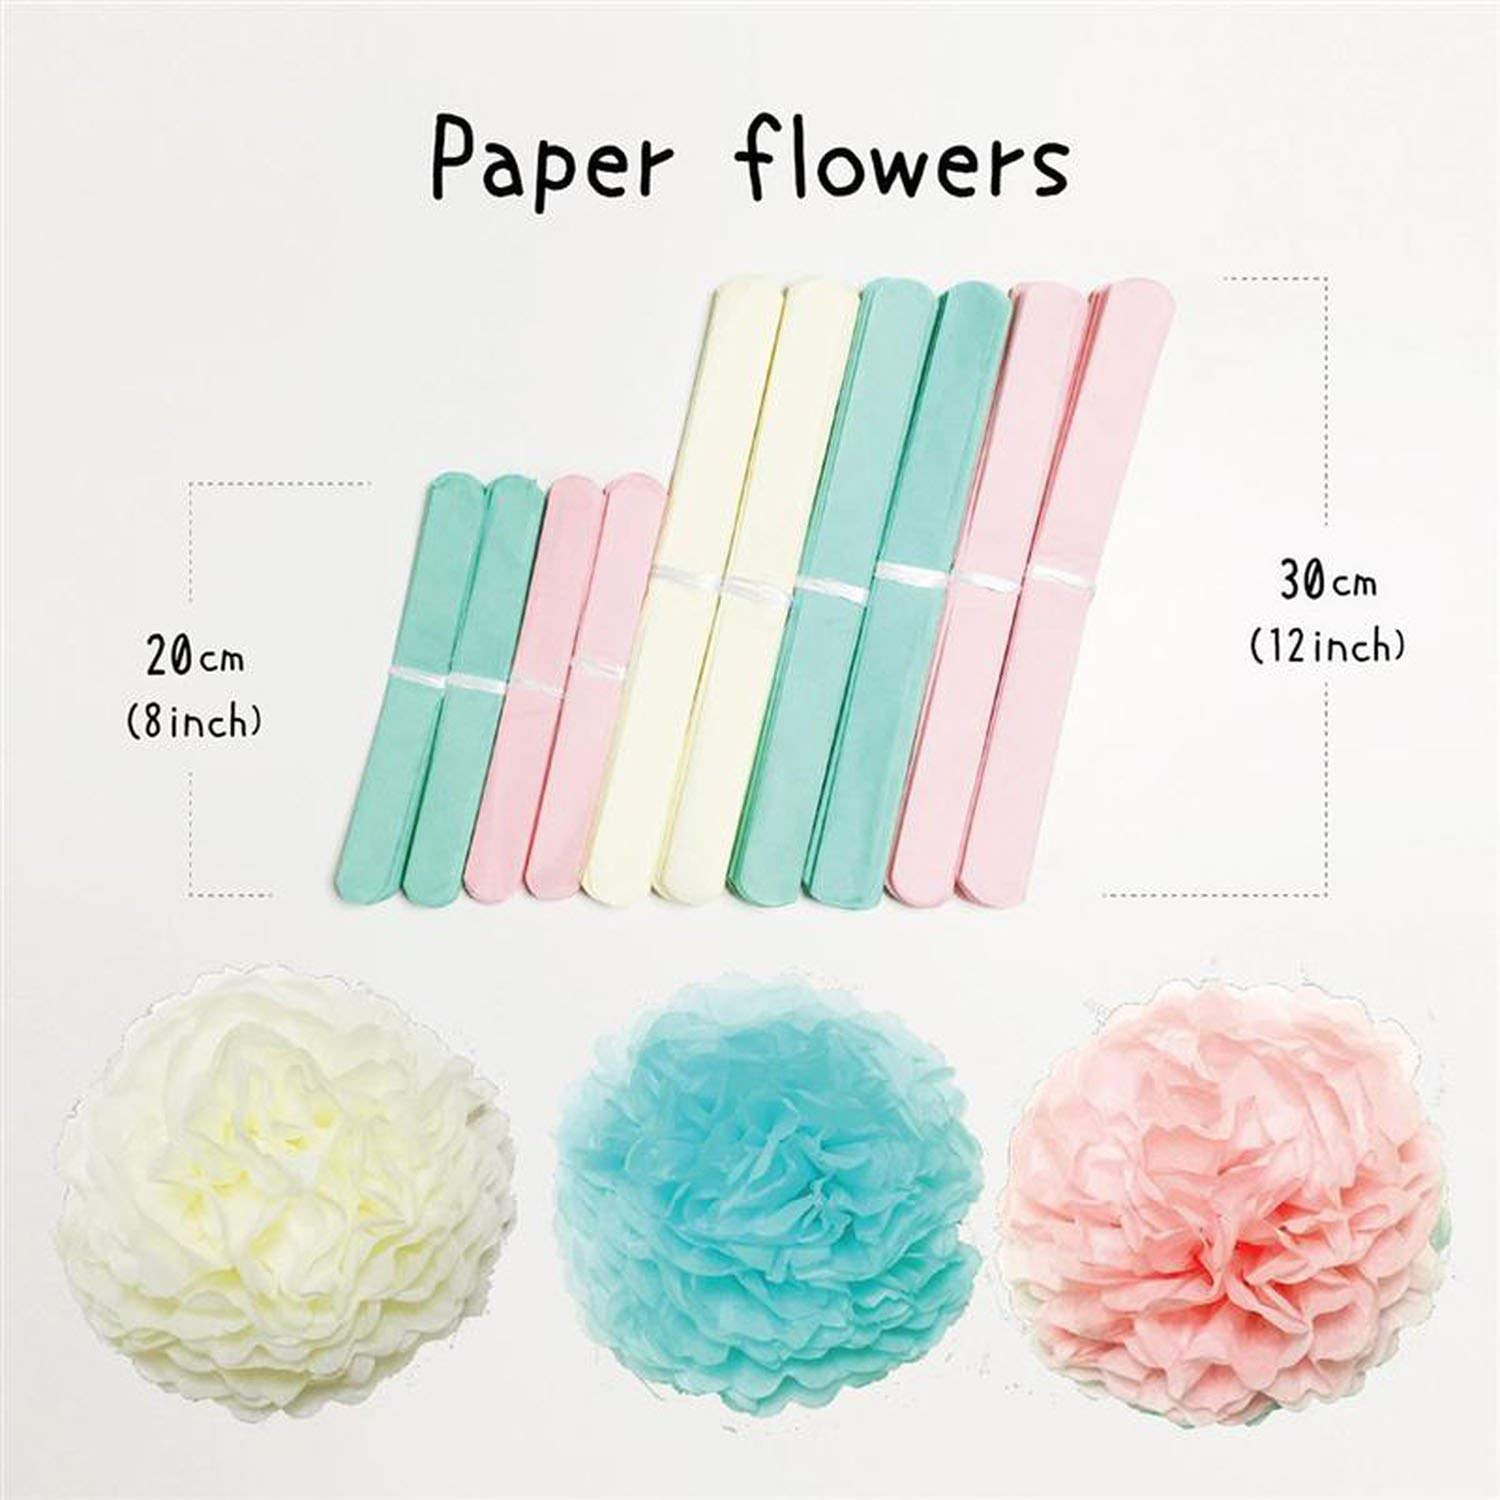 51 Pcs Paper Flowers Tassels DIY Paper Balloons Kit for Birthday Wedding Party Decoration (Pink Series),Purple by Hi Monkeys-Paper Party tassels Decorations (Image #6)